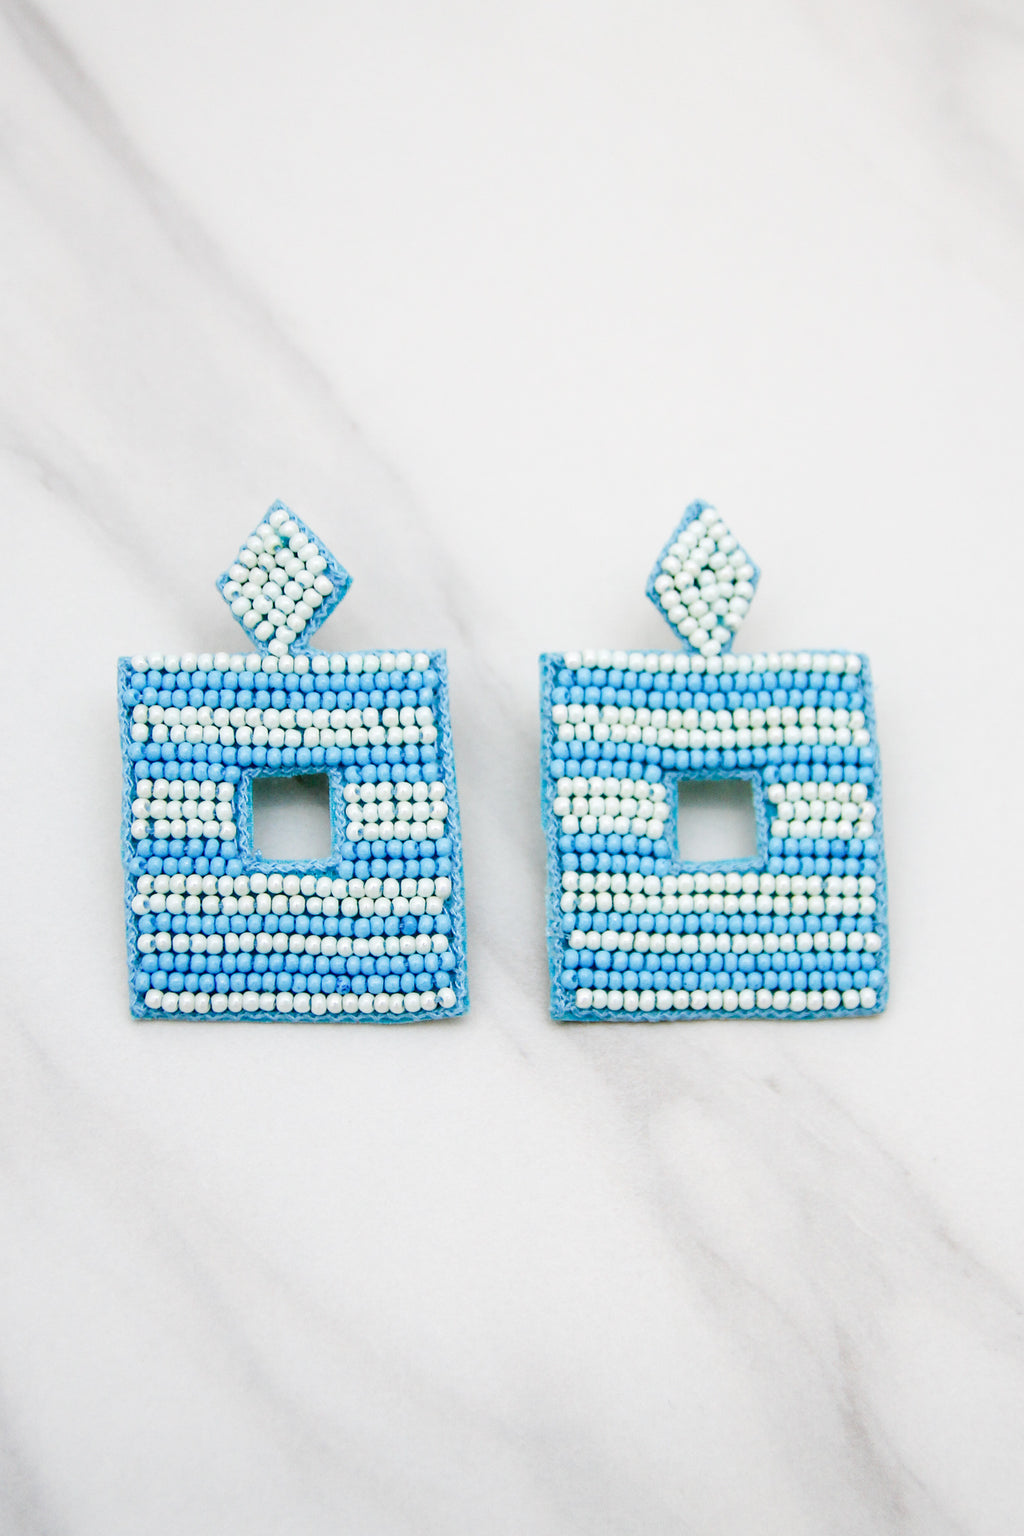 Let's Be Square Earrings - Turquoise